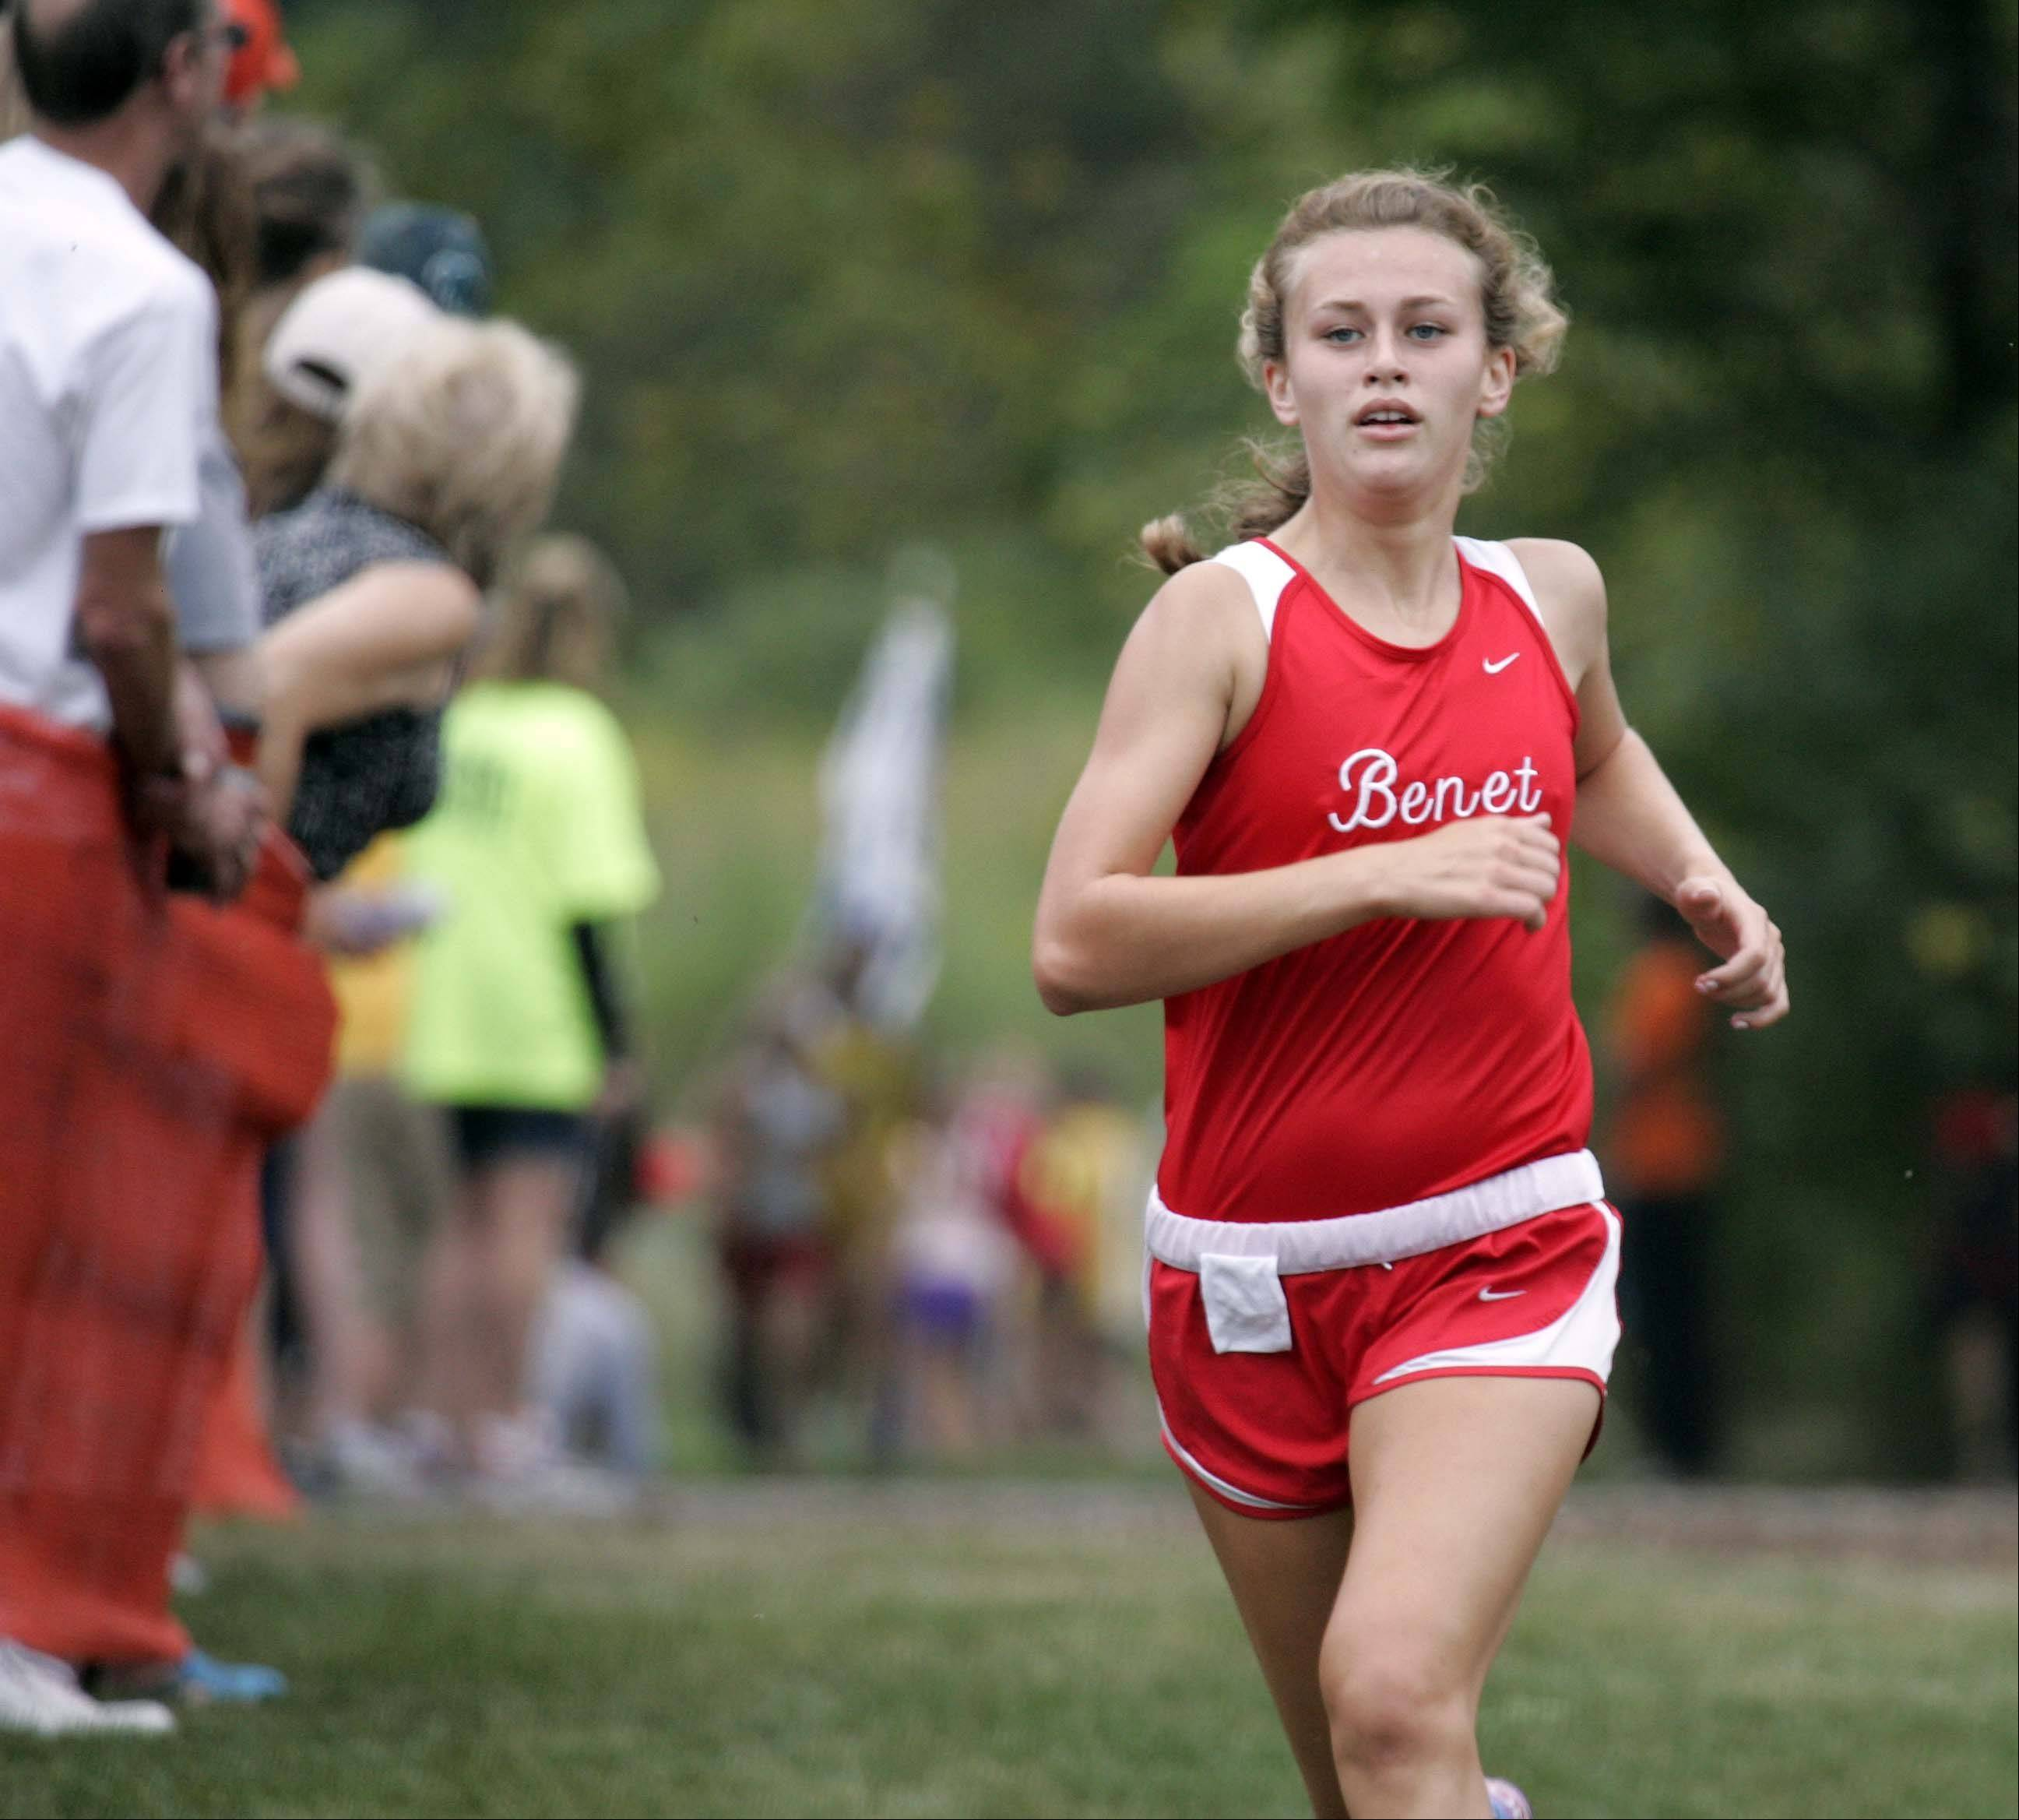 Benet Academy's Audrey Blazek races to fifth place during the girls varsity race at the St. Charles East cross country meet at LeRoy Oakes in St. Charles Saturday September 1, 2012.